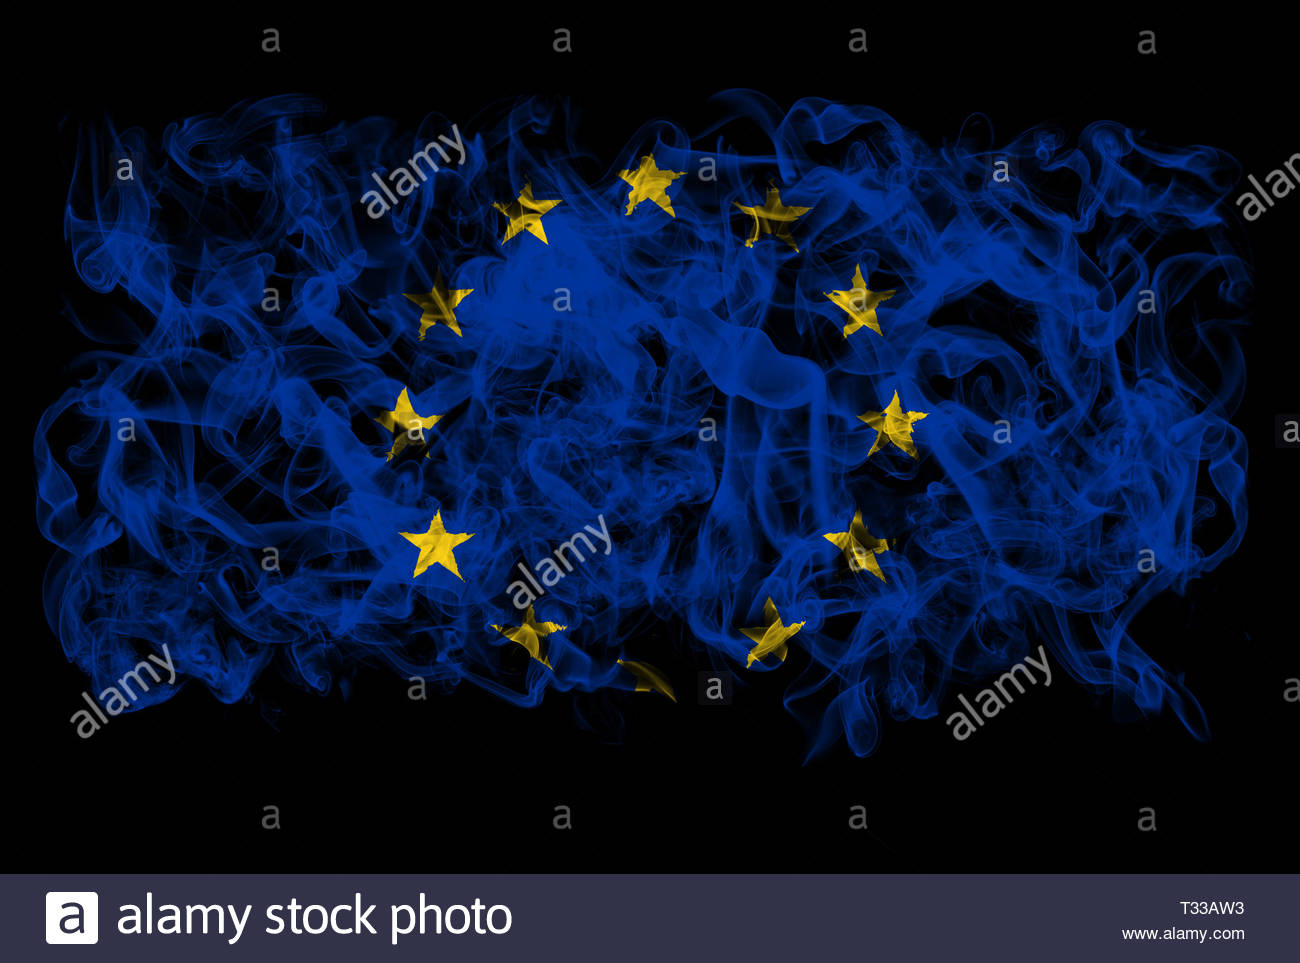 Smoking flag of European Union - Stock Image